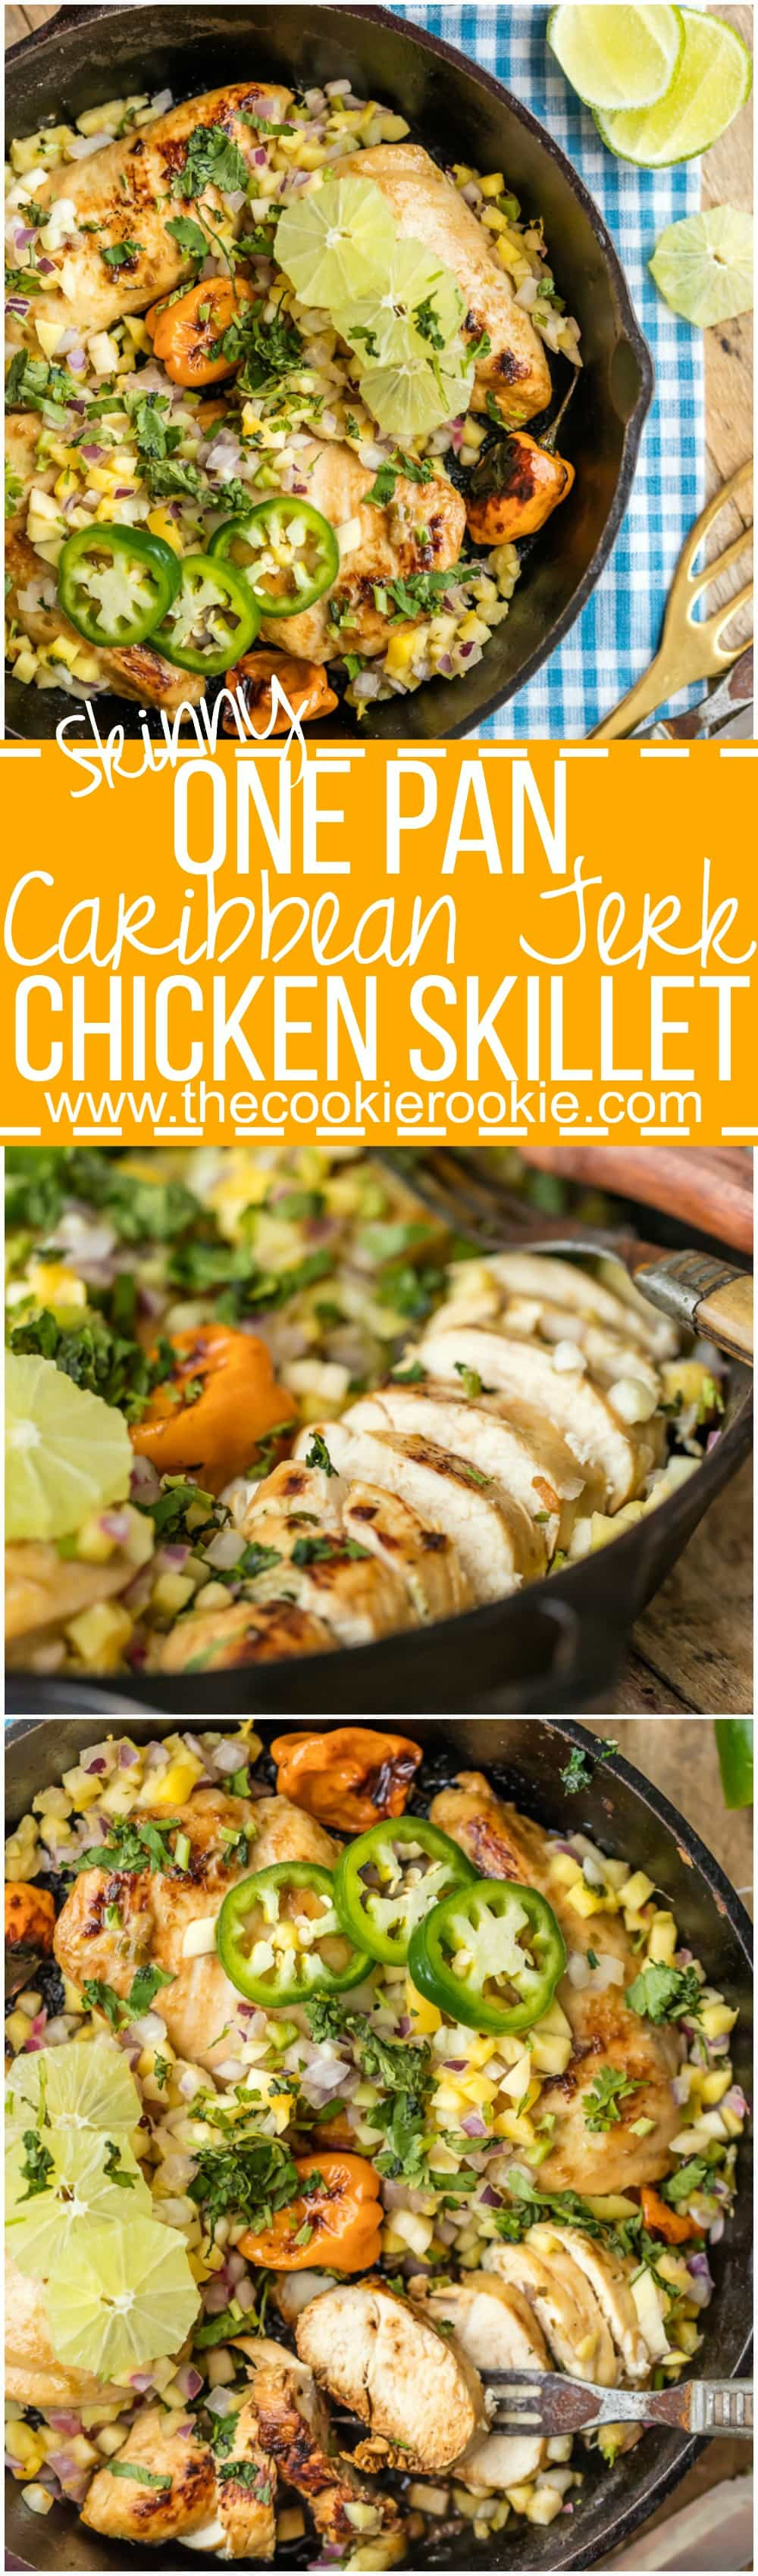 Make this SKINNY ONE PAN CARIBBEAN JERK CHICKEN SKILLET in just 15 minutes! Topped with mango salsa for a cool kick. A delicious and easy weeknight meal!